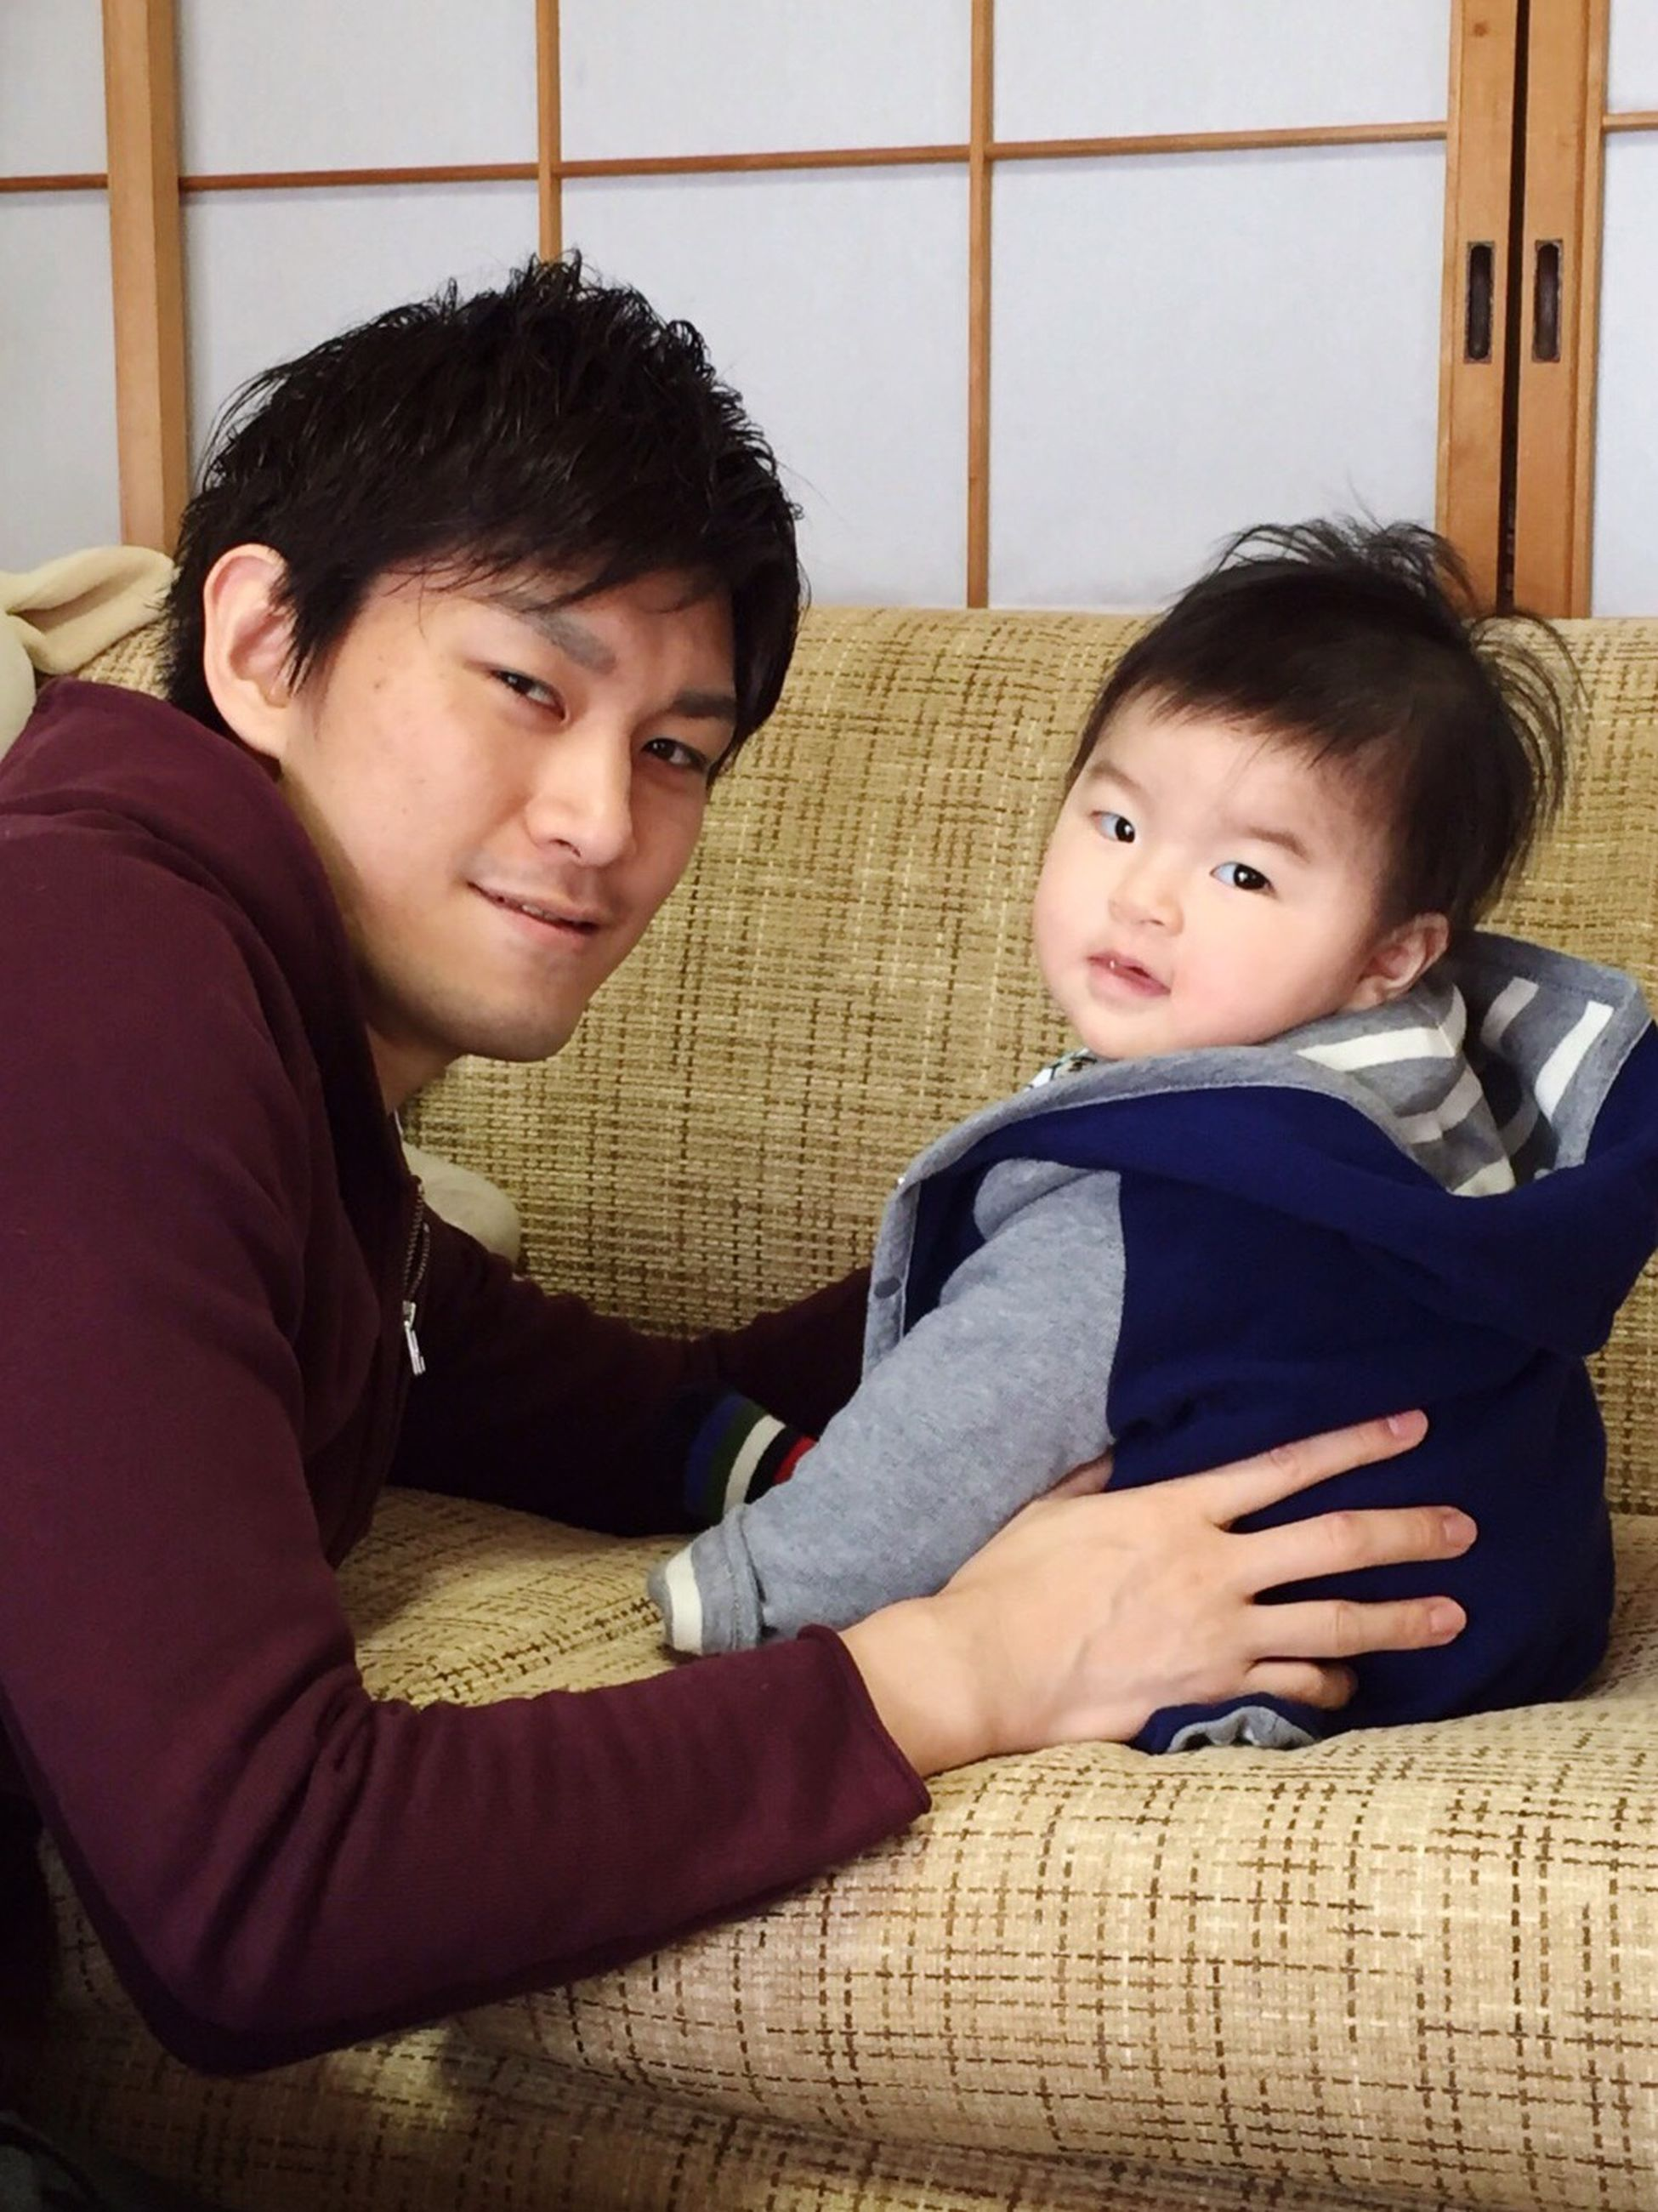 my favorite photo❤️ Father & Son Cute Two People Looking At Camera Family Happiness Mysweetbabies Love ♥ Favorite MyTreasure